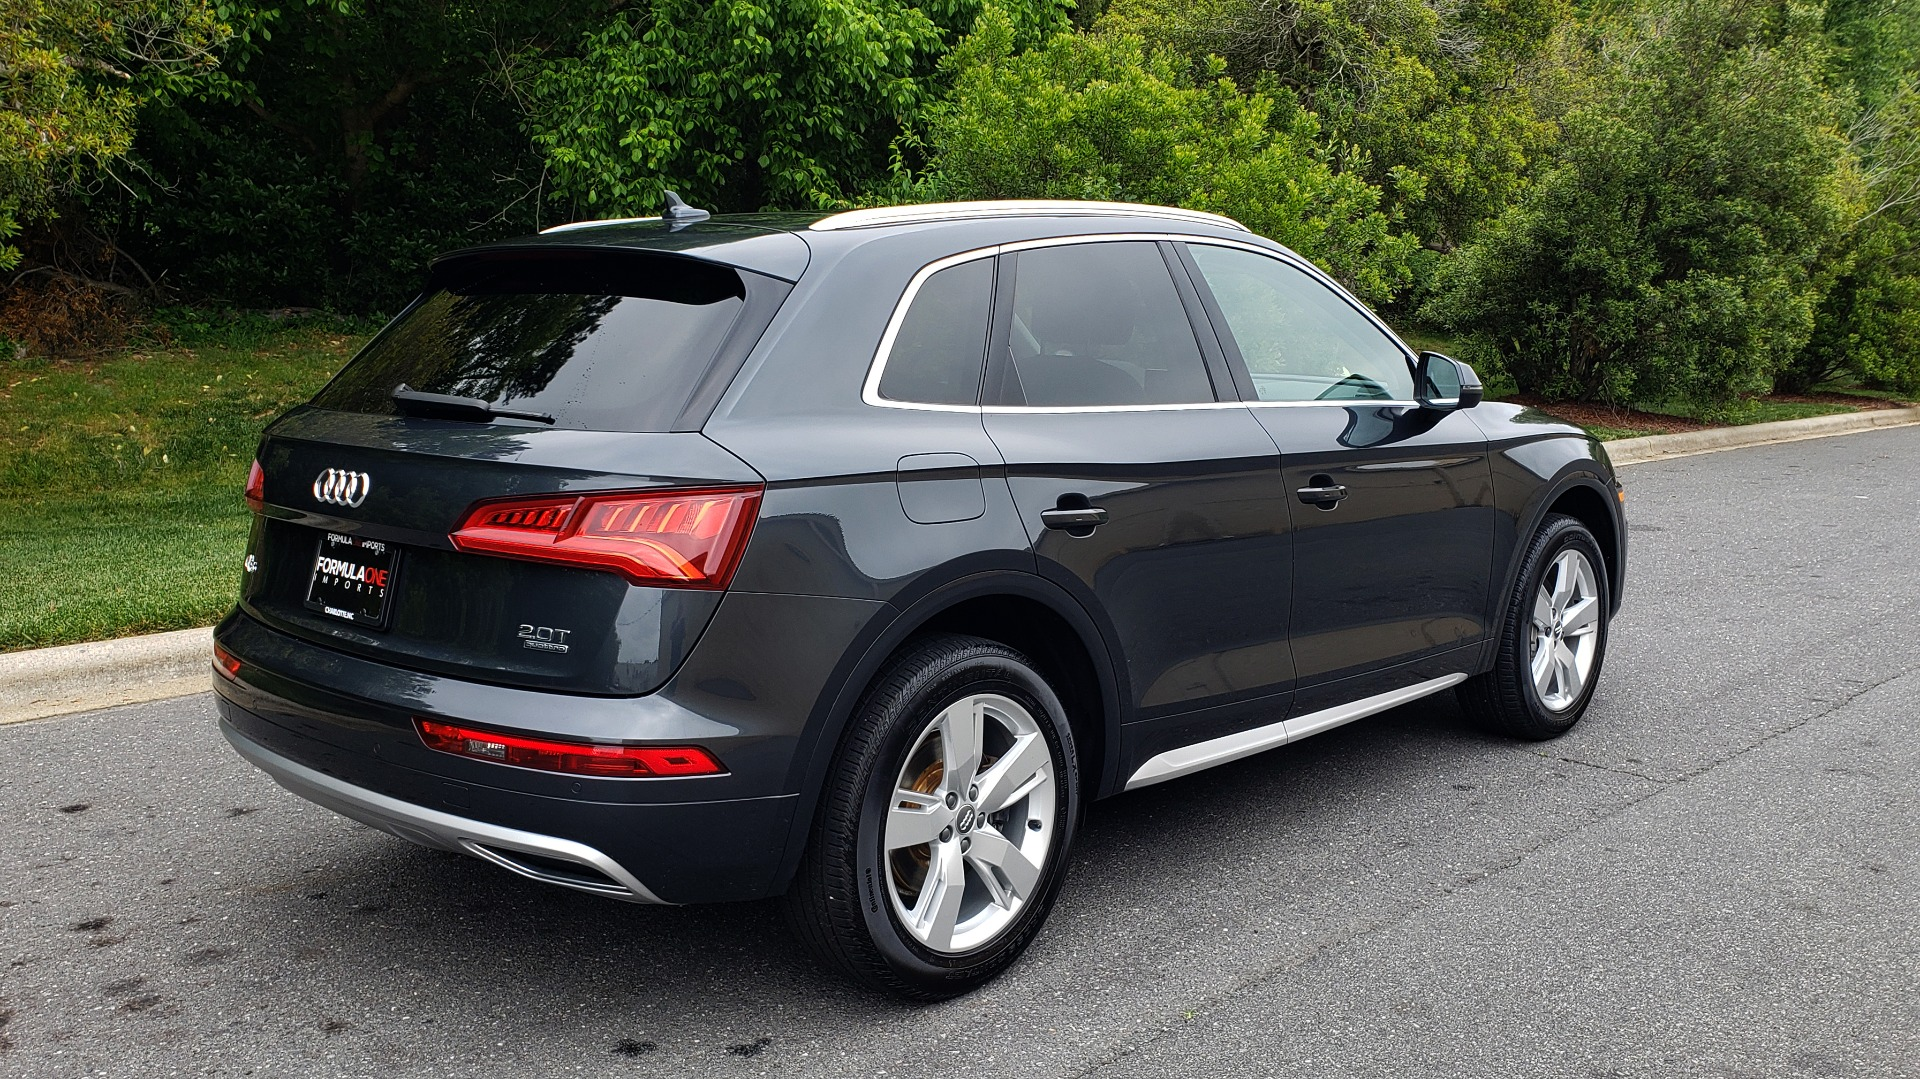 Used 2018 Audi Q5 PREMIUM PLUS / S-TRONIC / NAV / PANO-ROOF / PARK SYS PLUS for sale Sold at Formula Imports in Charlotte NC 28227 6